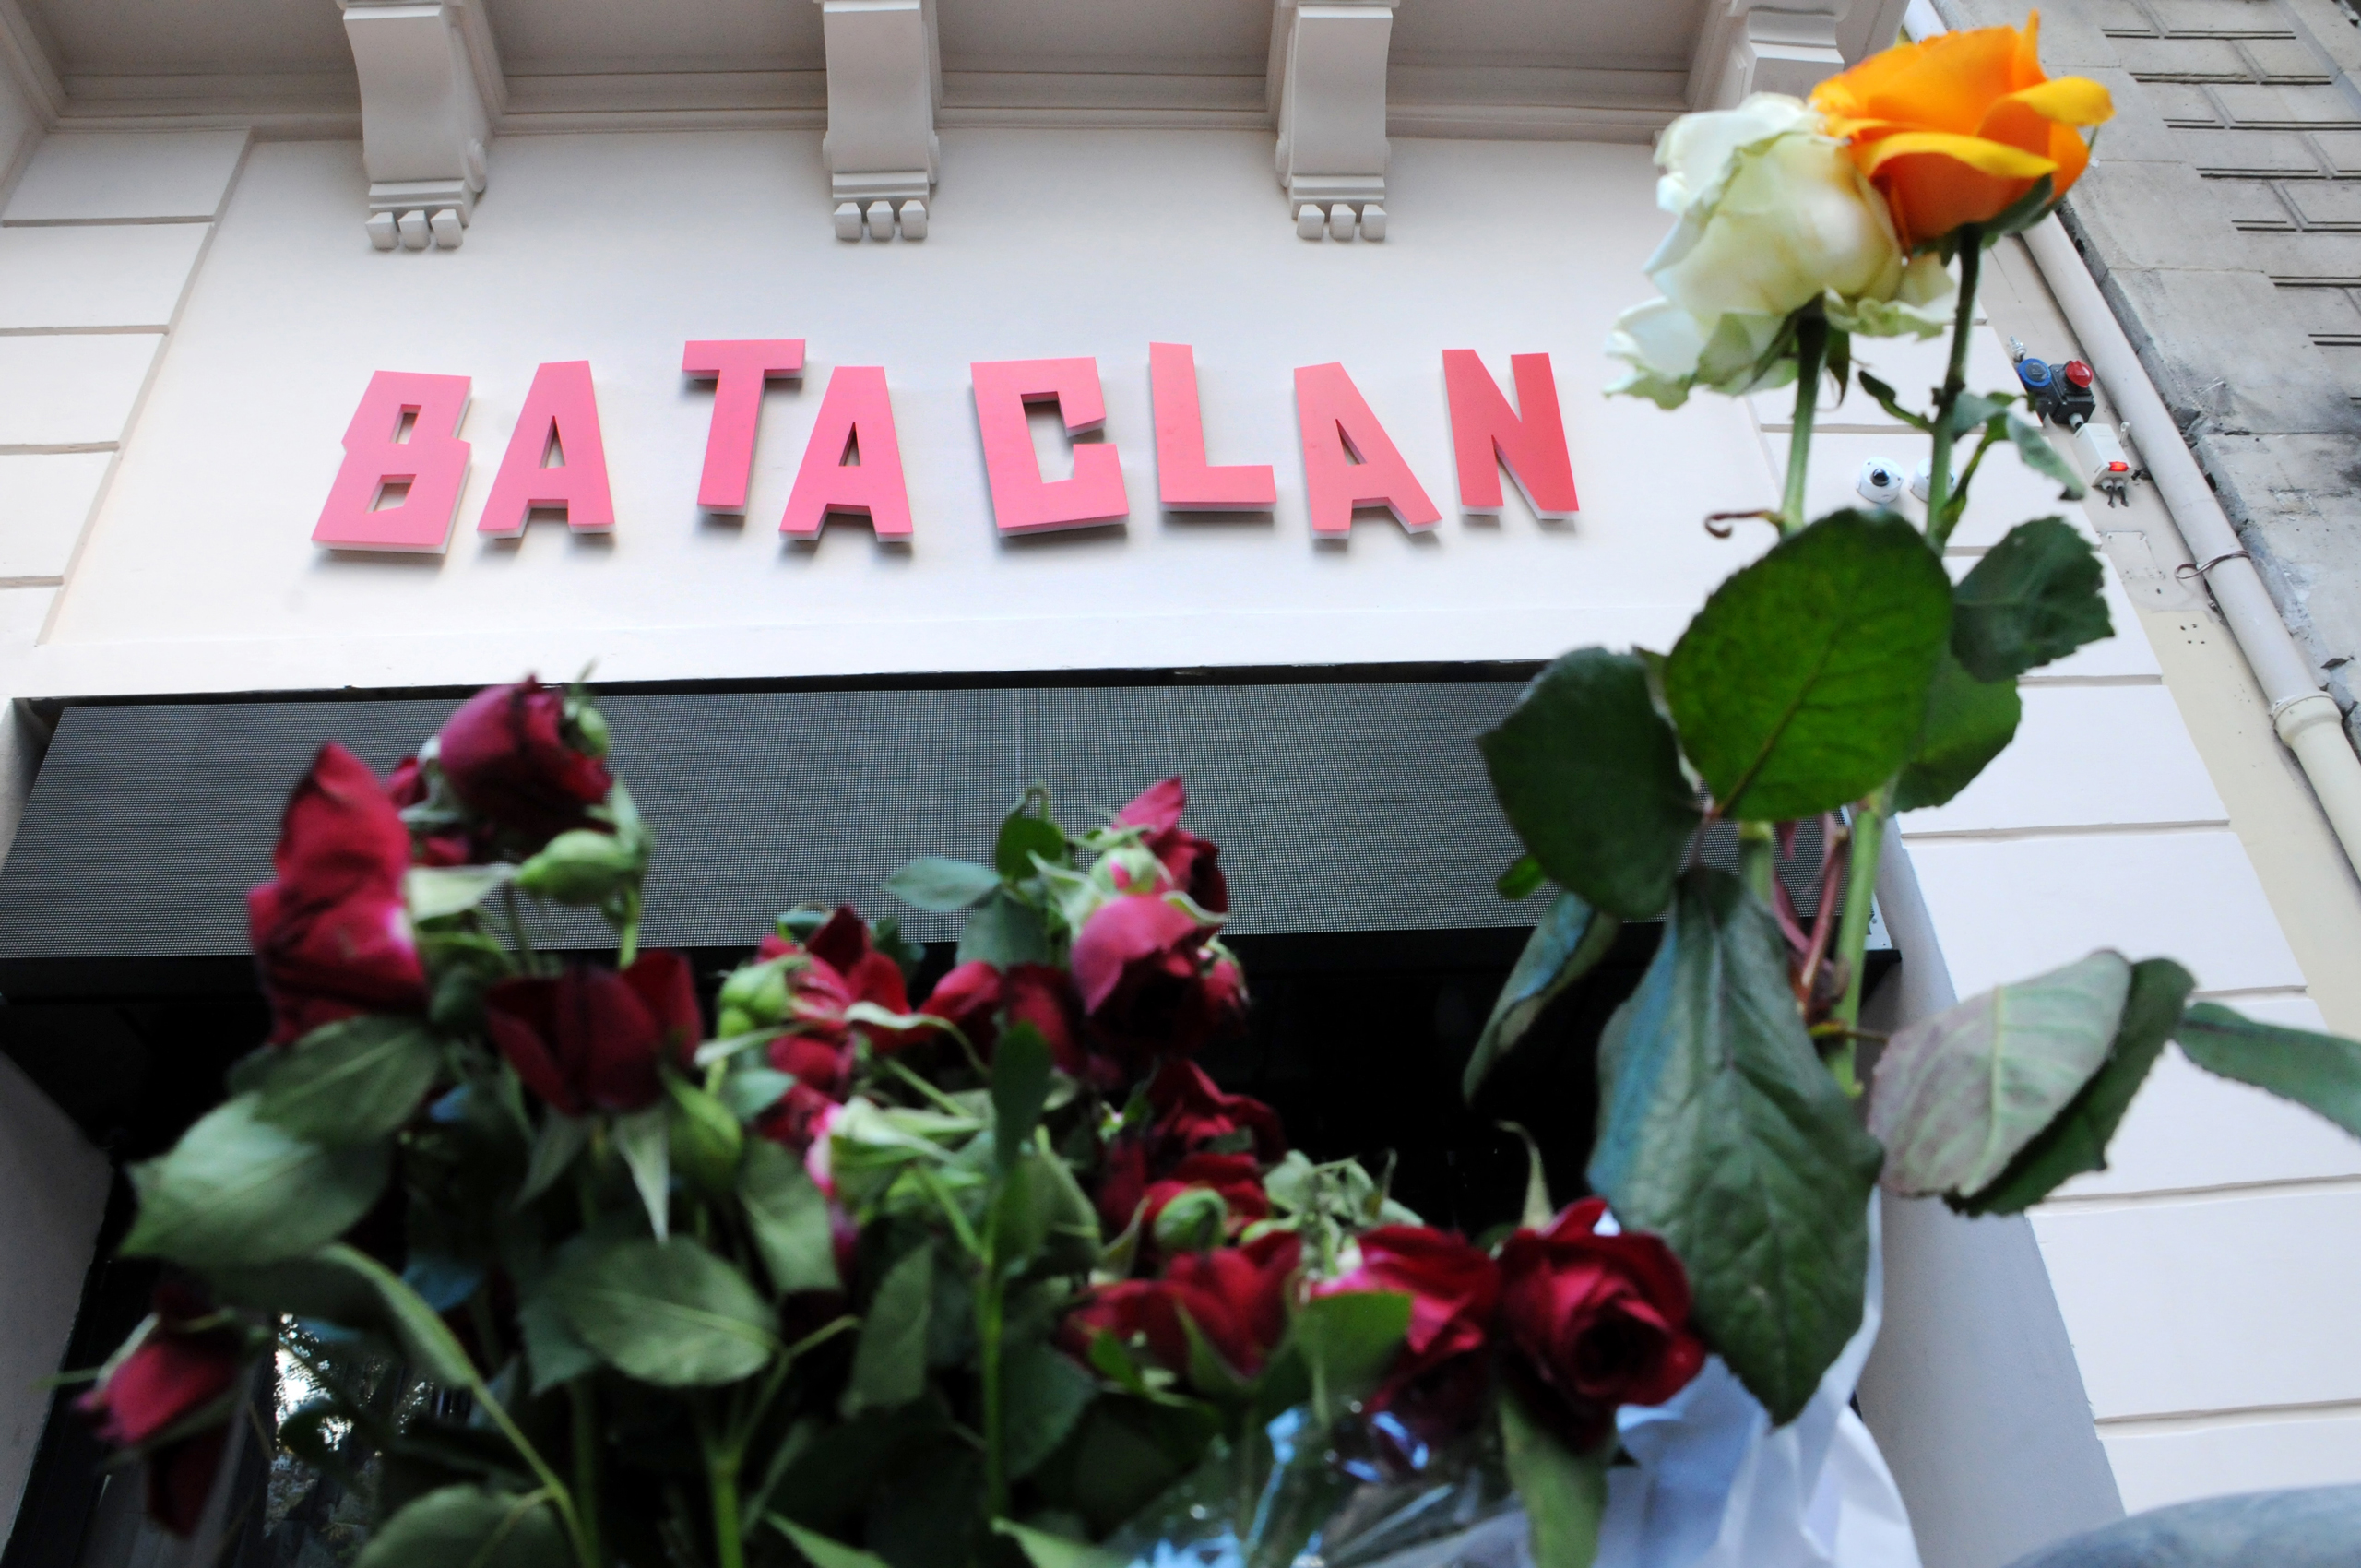 The new facade of the Bataclan concert hall, one of the targets of the November 13, 2015 terrorist attacks in Paris, on Nov. 6, 2016.